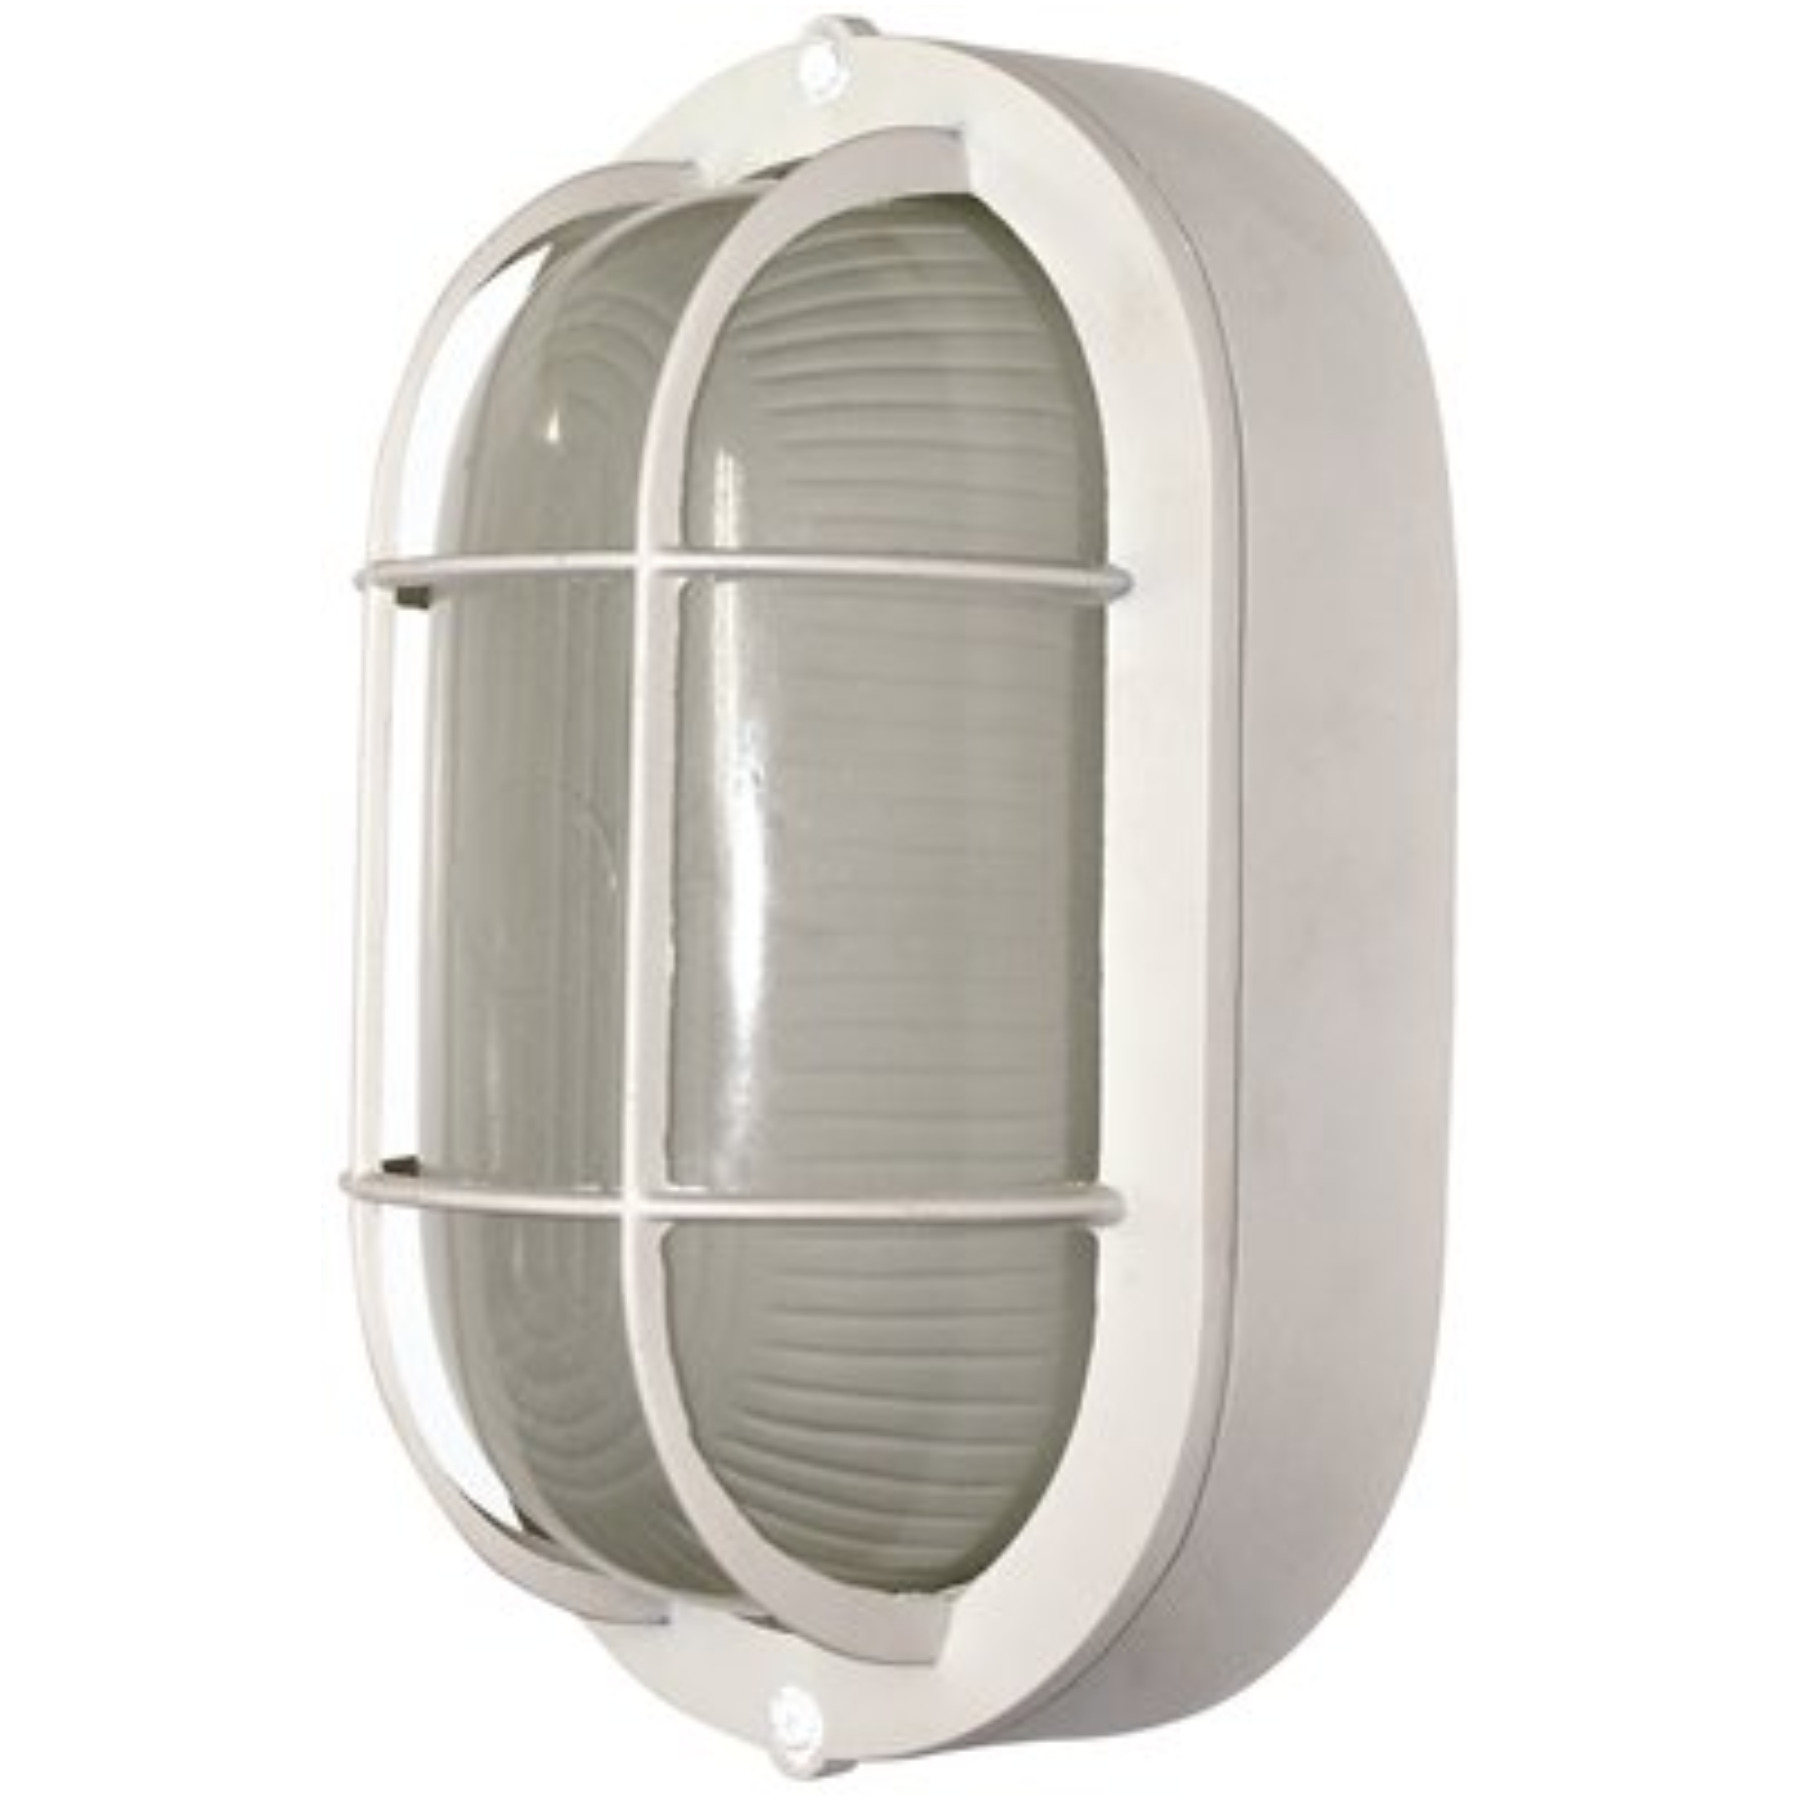 ROYAL COVE� OUTDOOR OVAL WALL LANTERN, WHITE, 8-1/4 X 4-3/4 IN., USES (1) 60-WATT MEDIUM BASE LAMP*